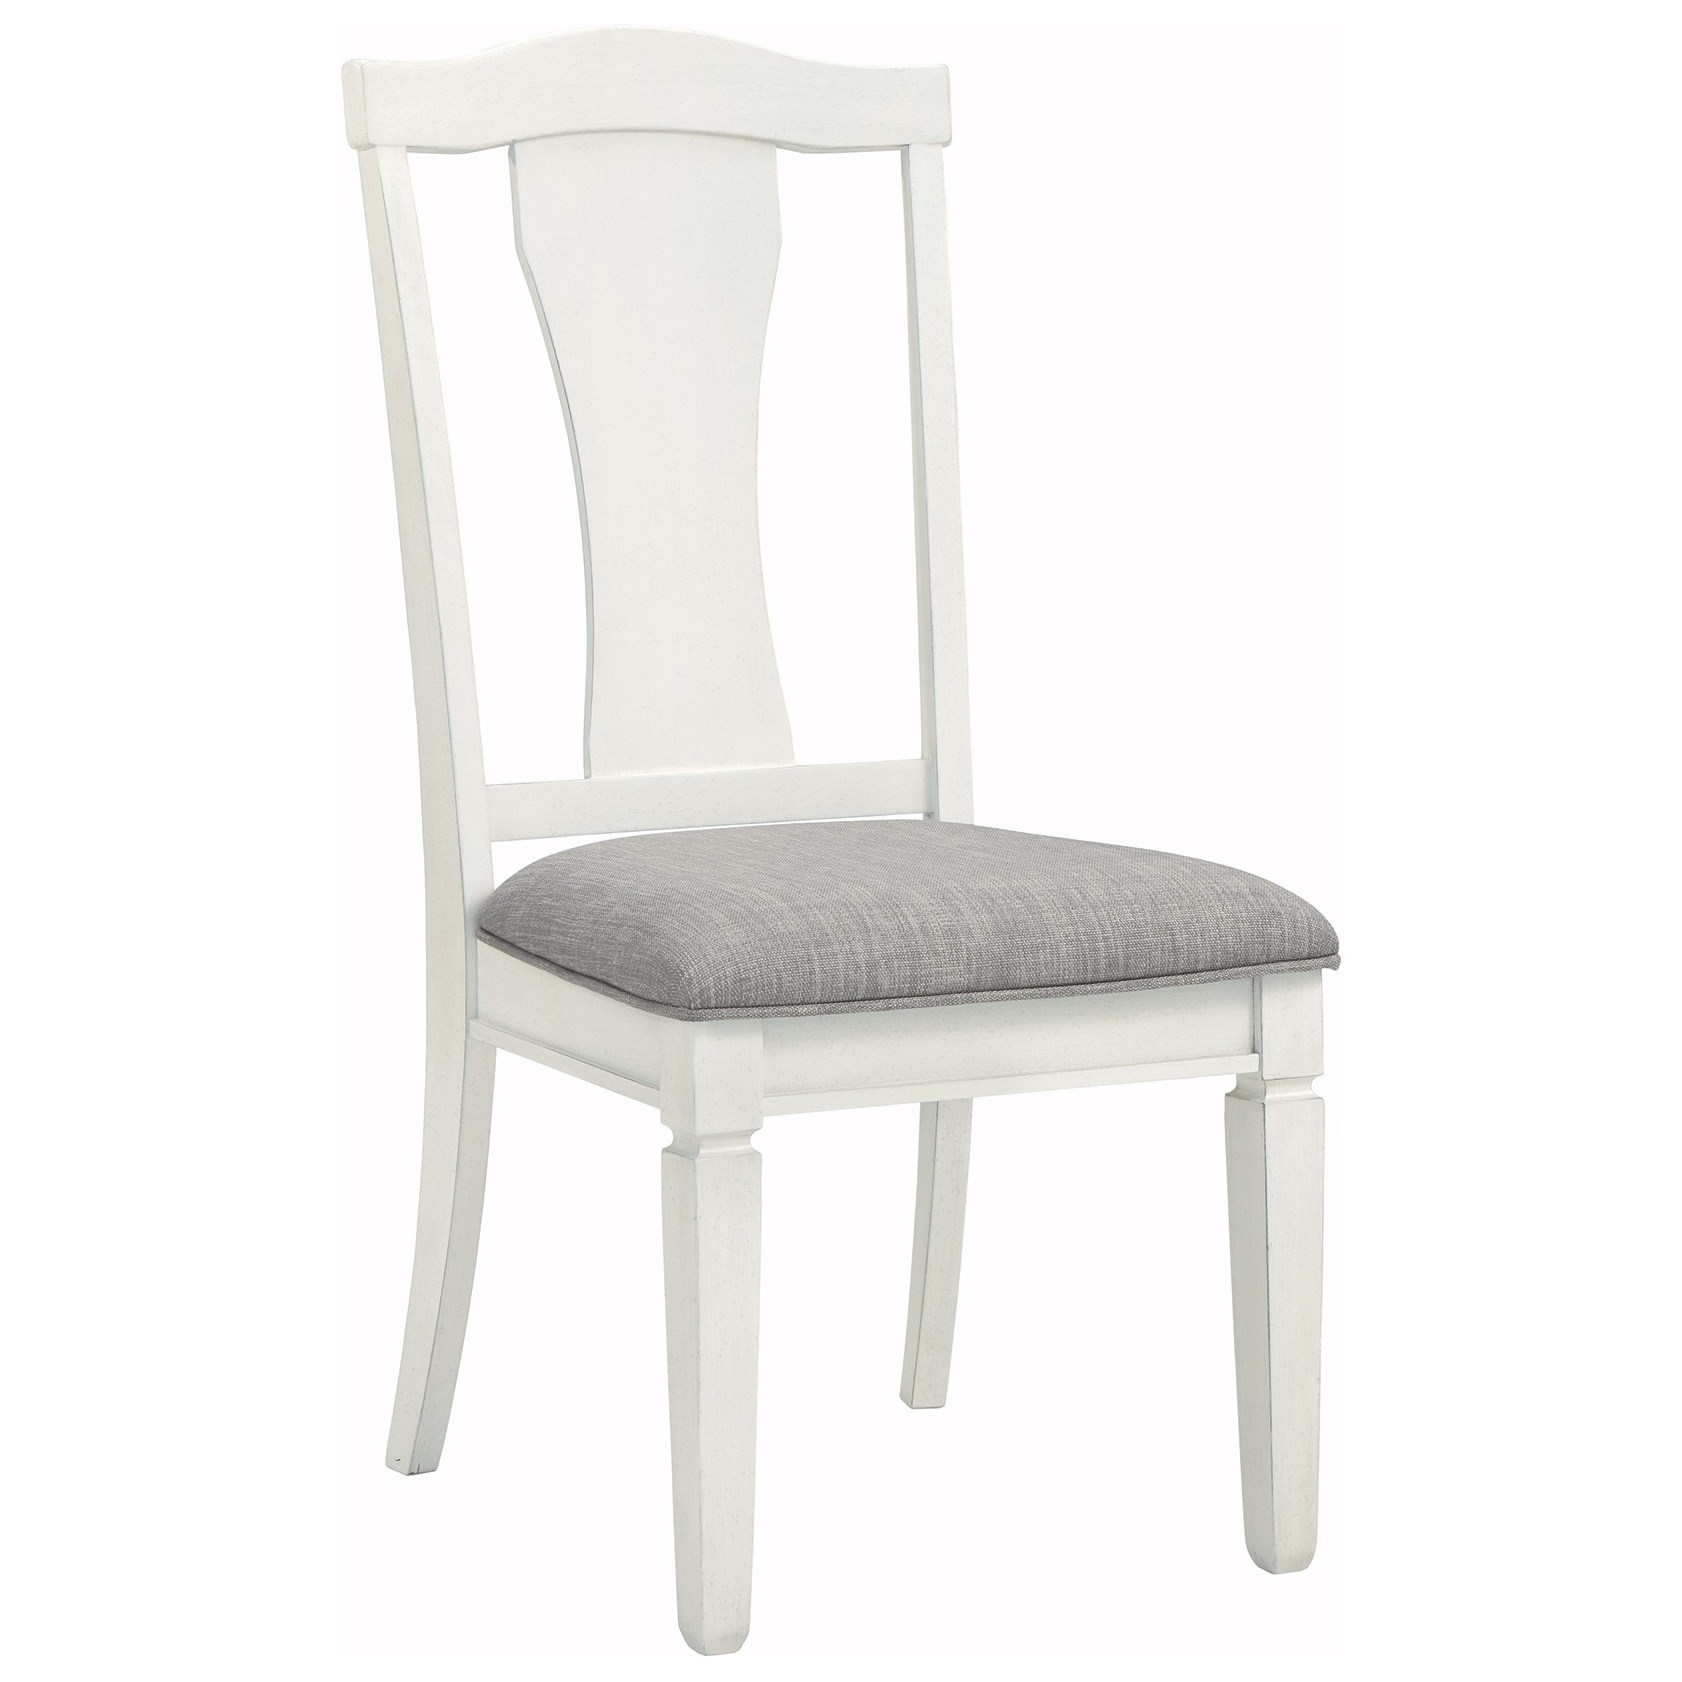 Nashbryn Side Chair by Benchcraft at Miller Waldrop Furniture and Decor